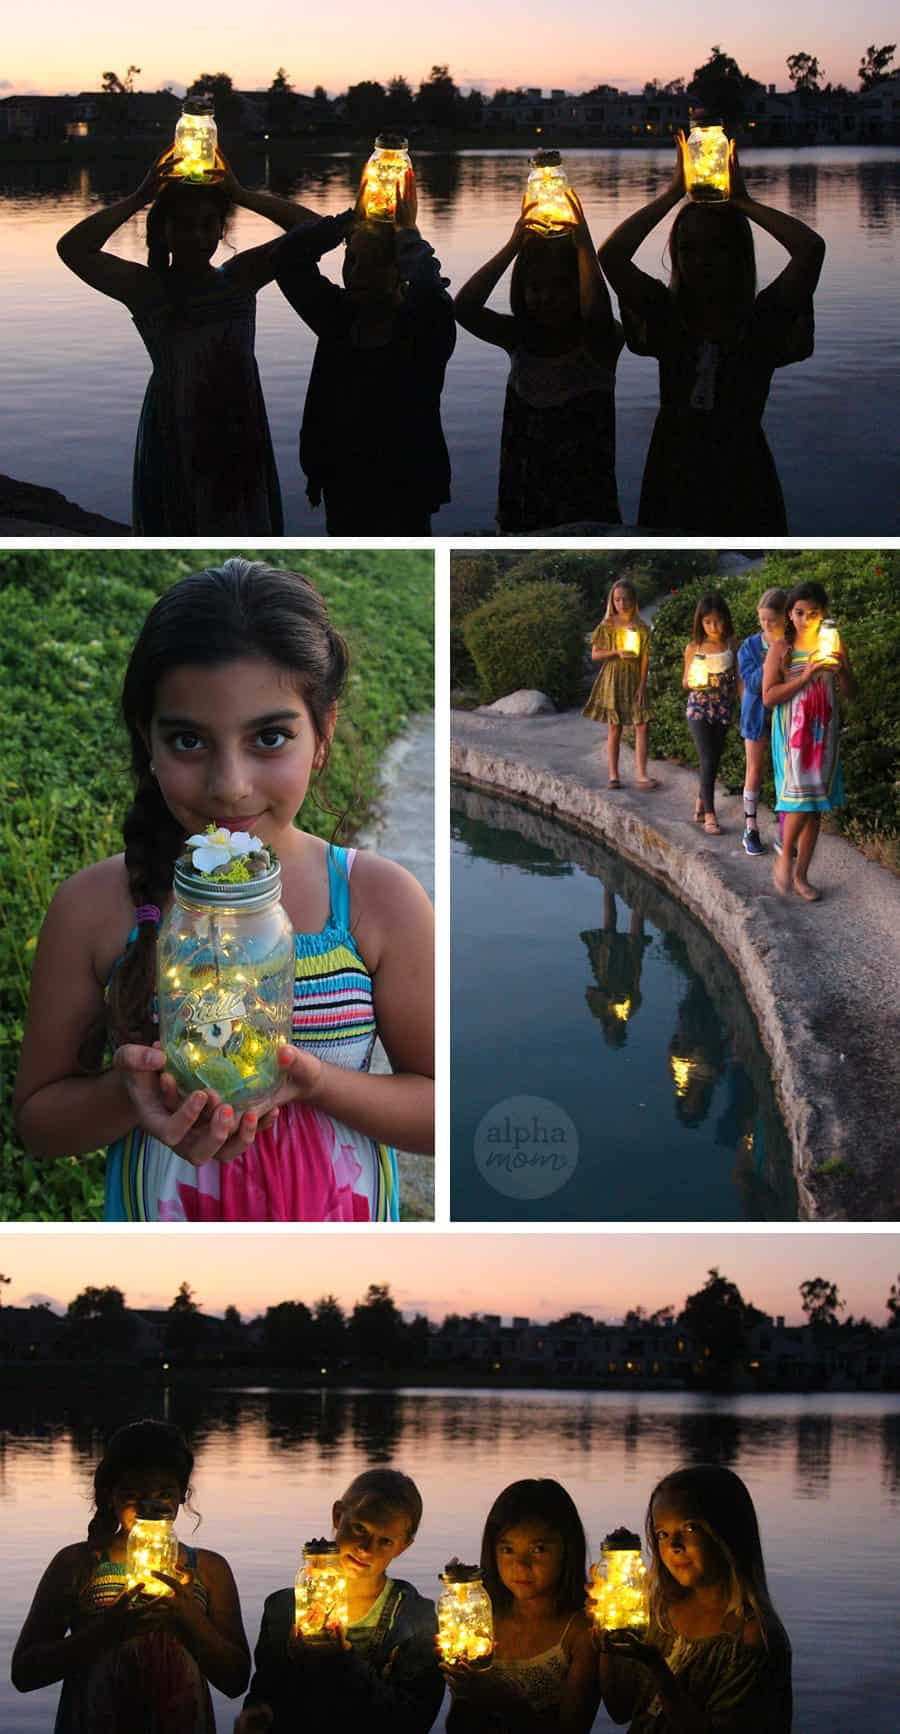 Children holding Light-up fairy jars at sunset by the water